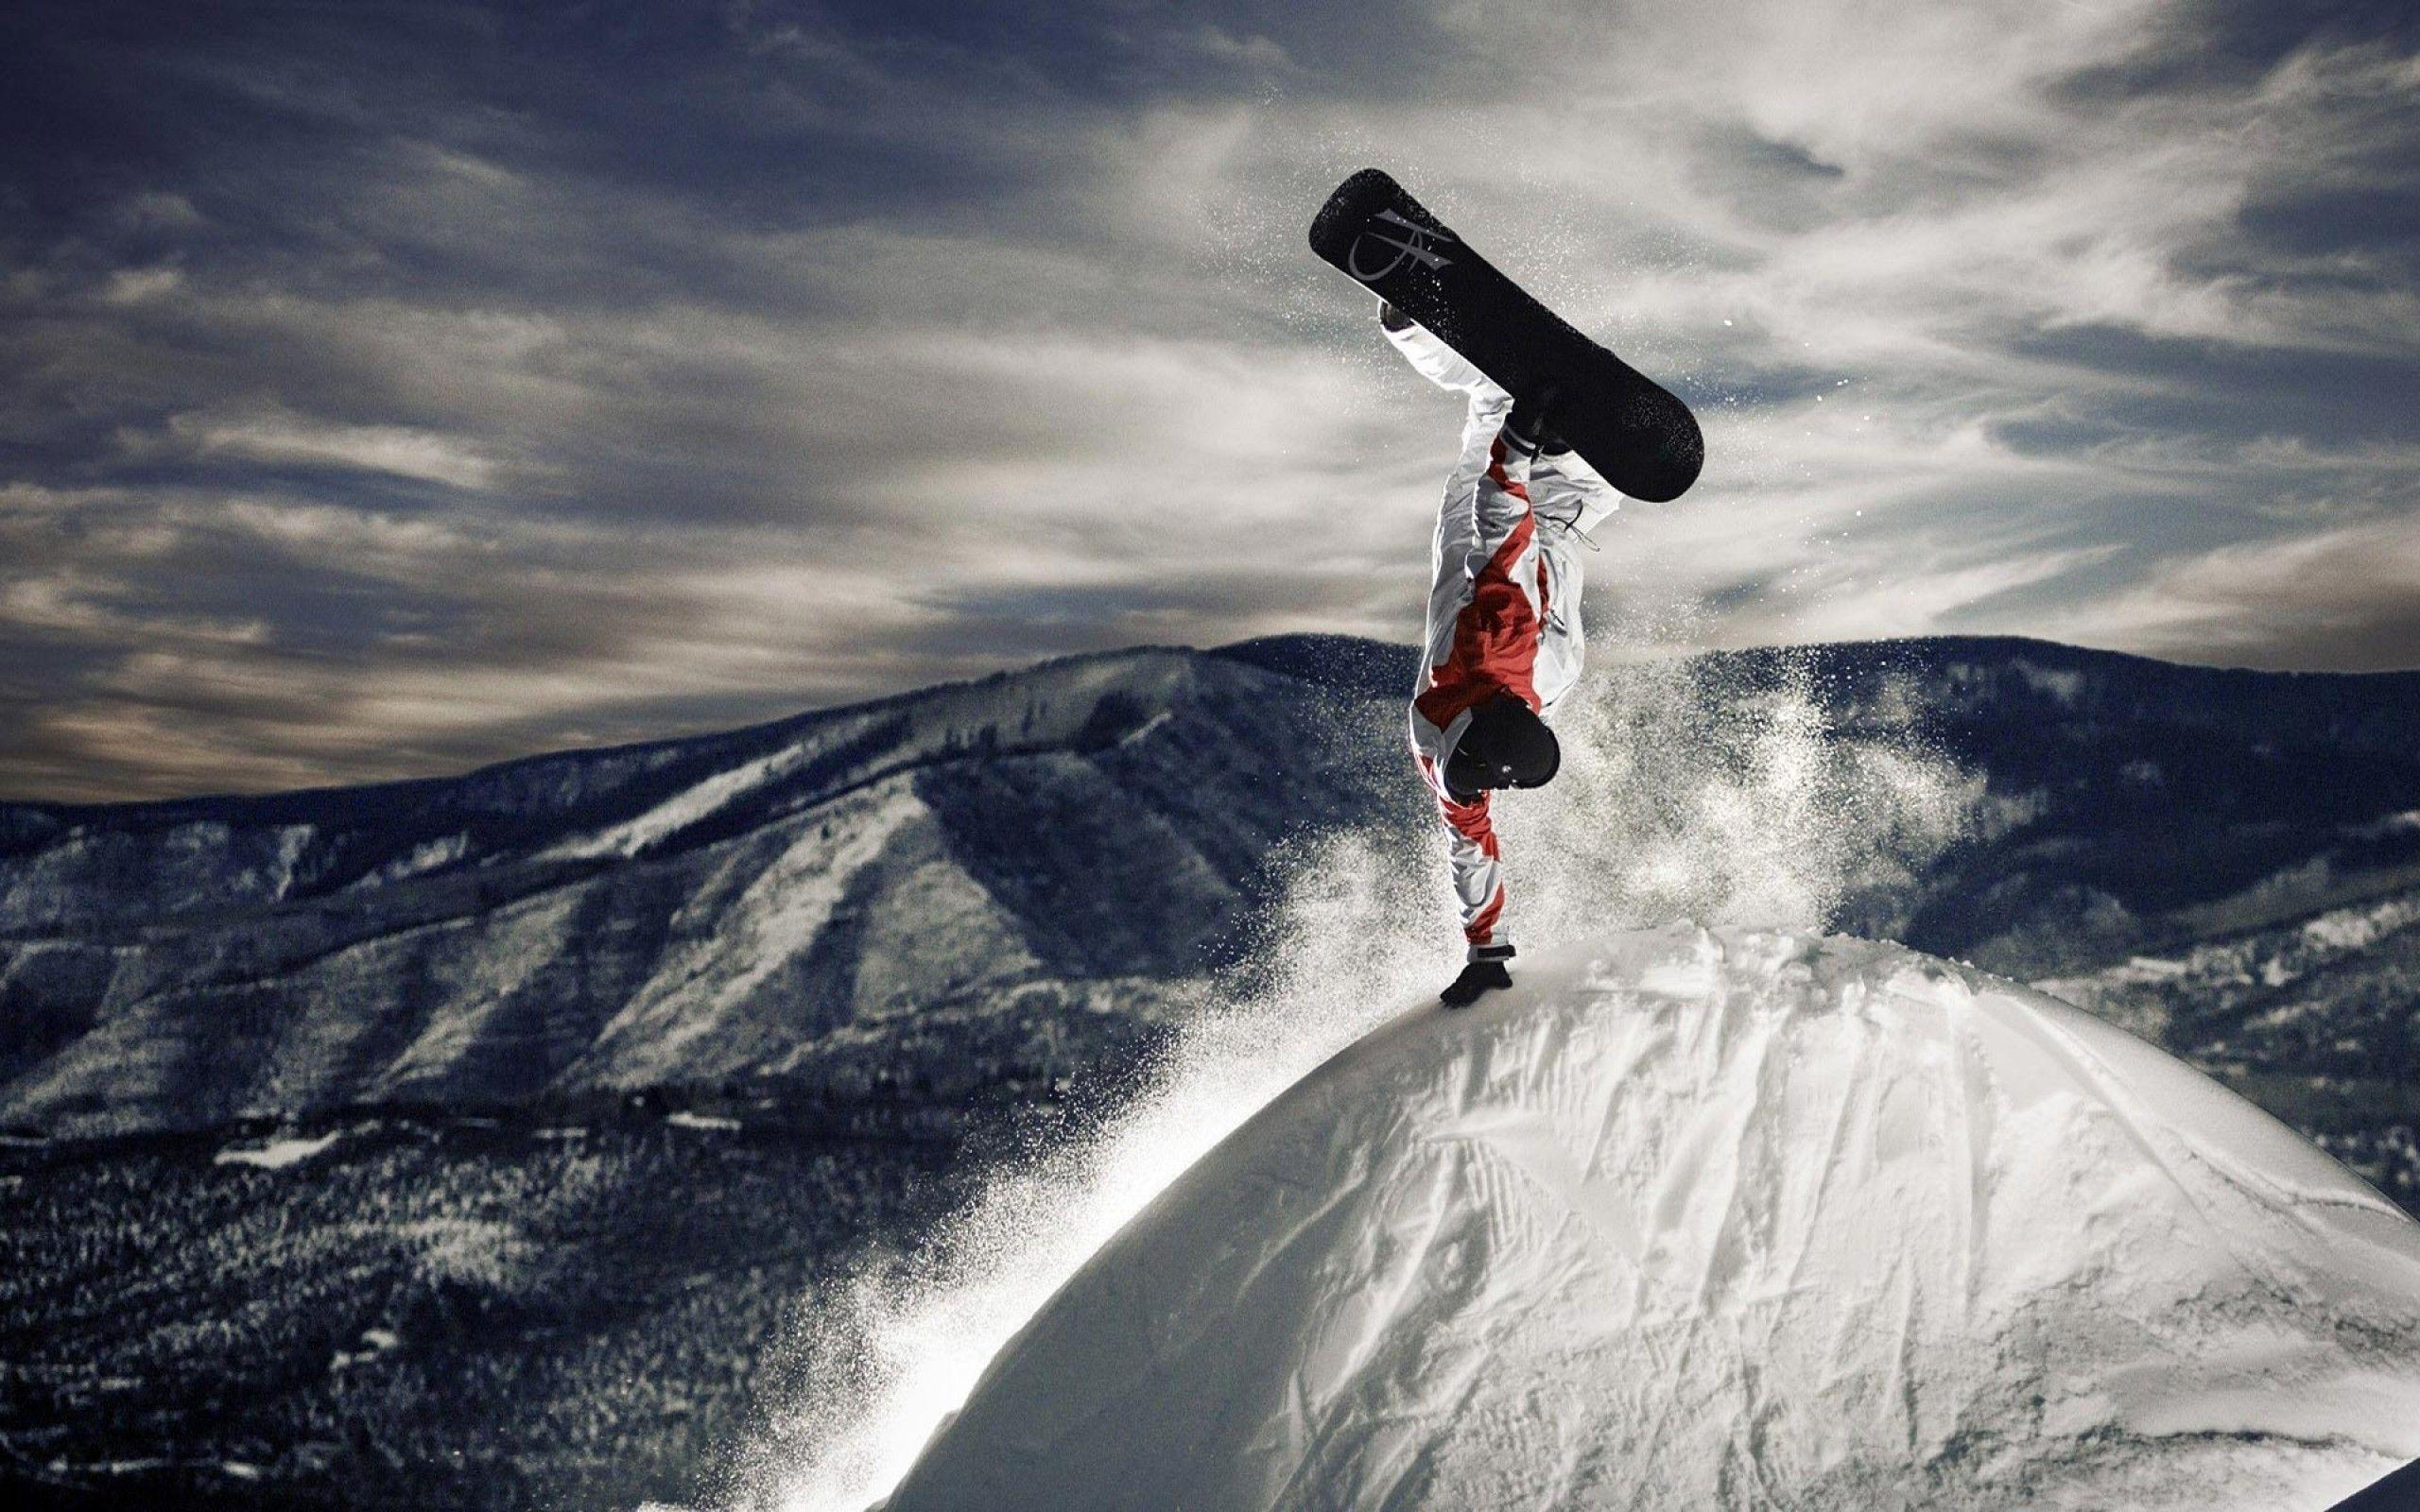 snowboard outdoor wallpaper desktop - photo #24